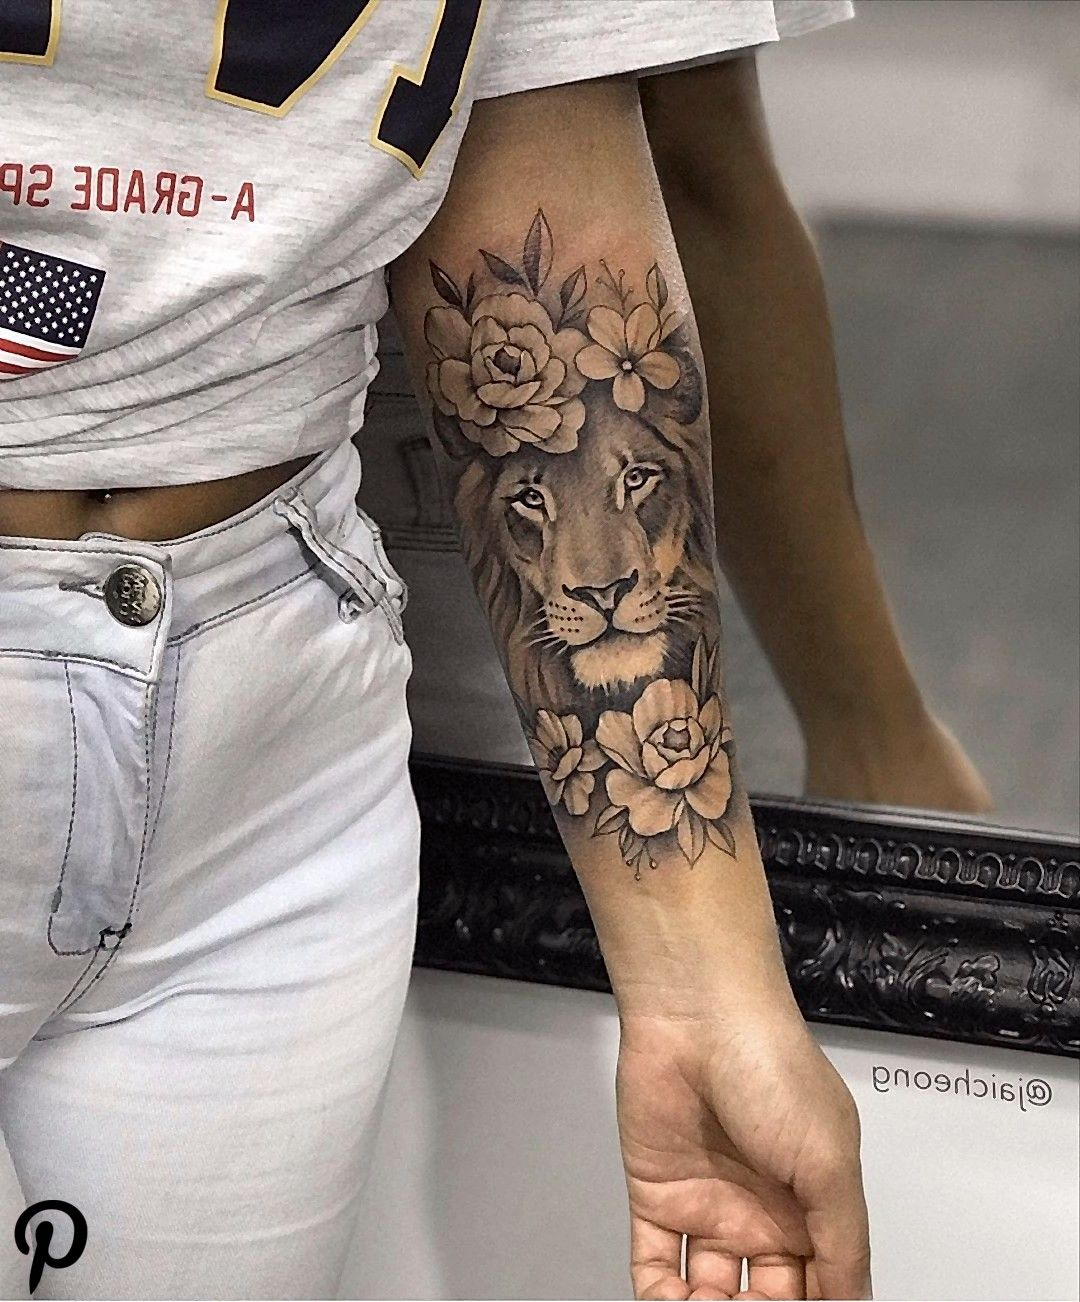 Pin by Makayla Garcia on Tattoos in 2020 (With images